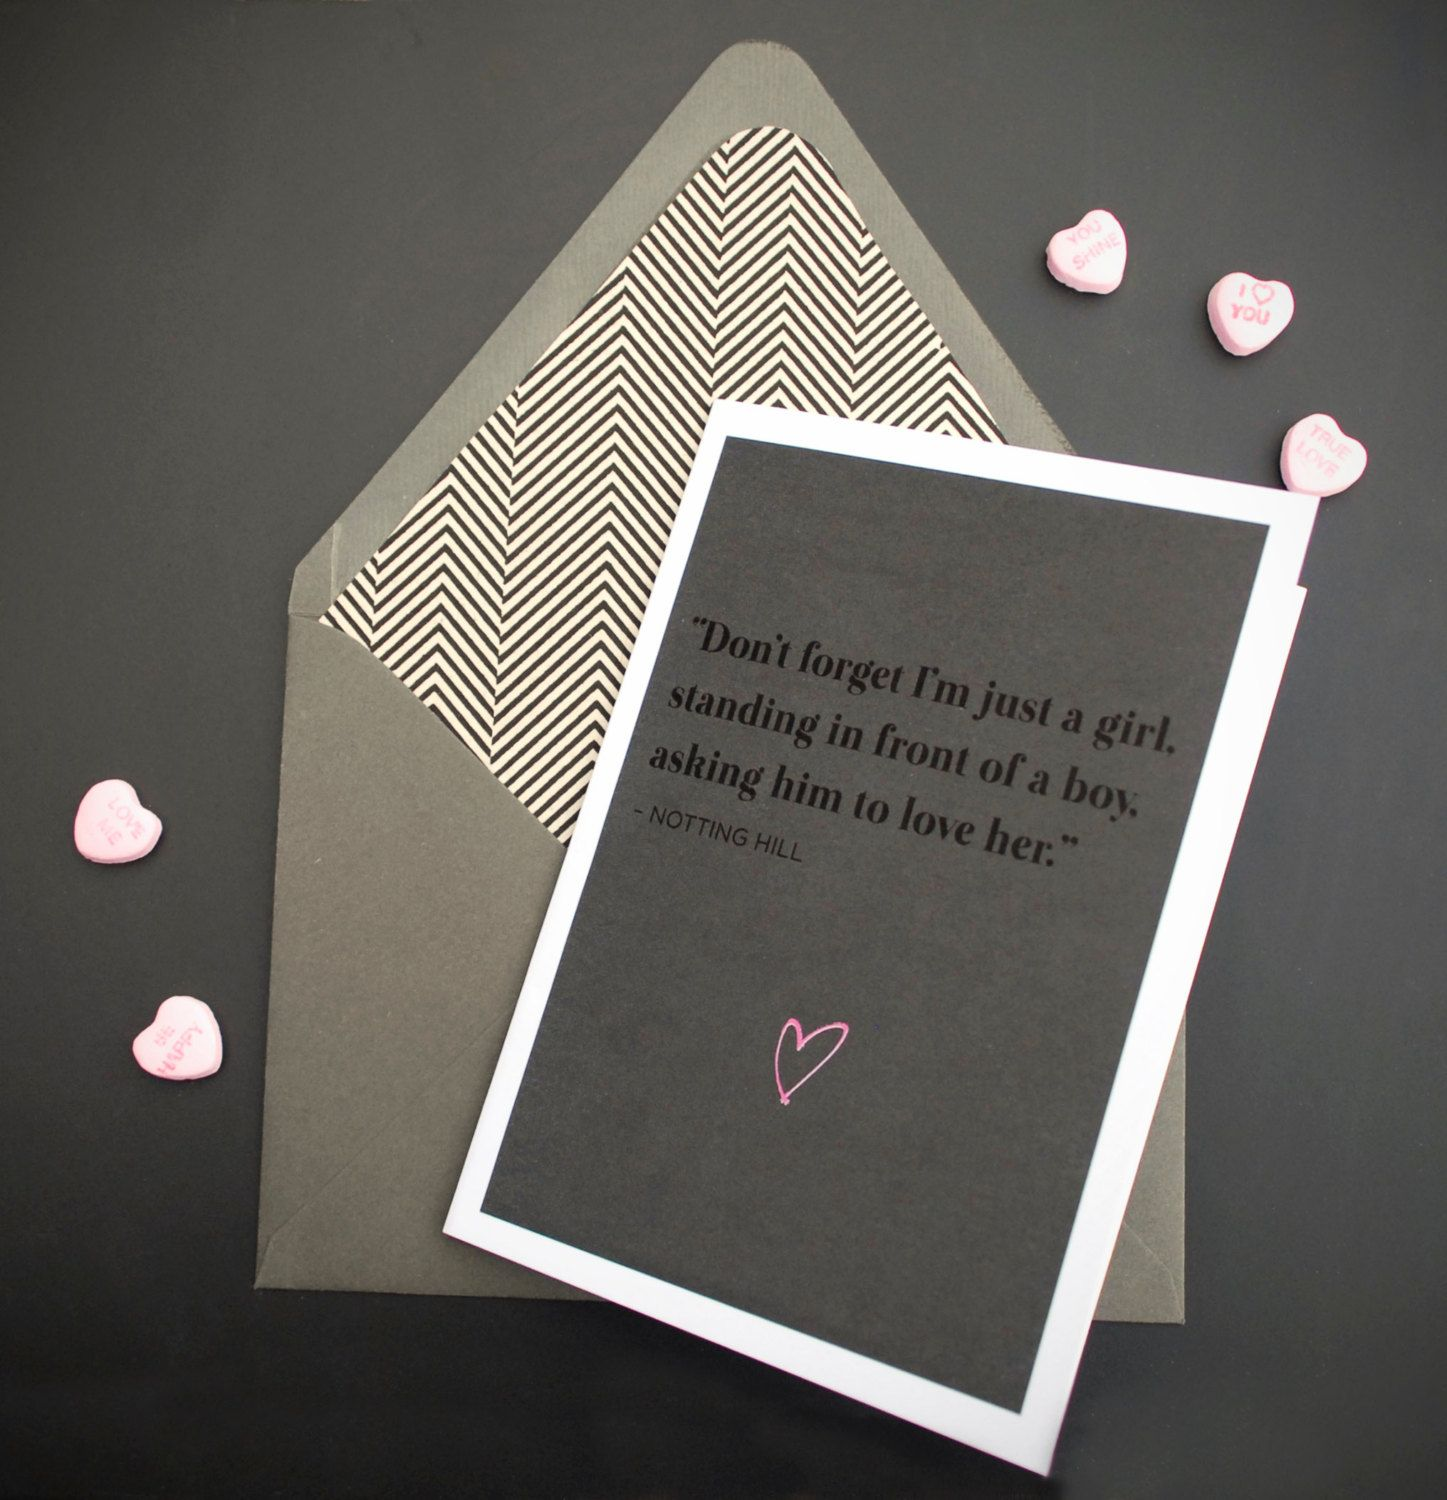 Valentine's Day Card Movie Quote Notting Hill Movie